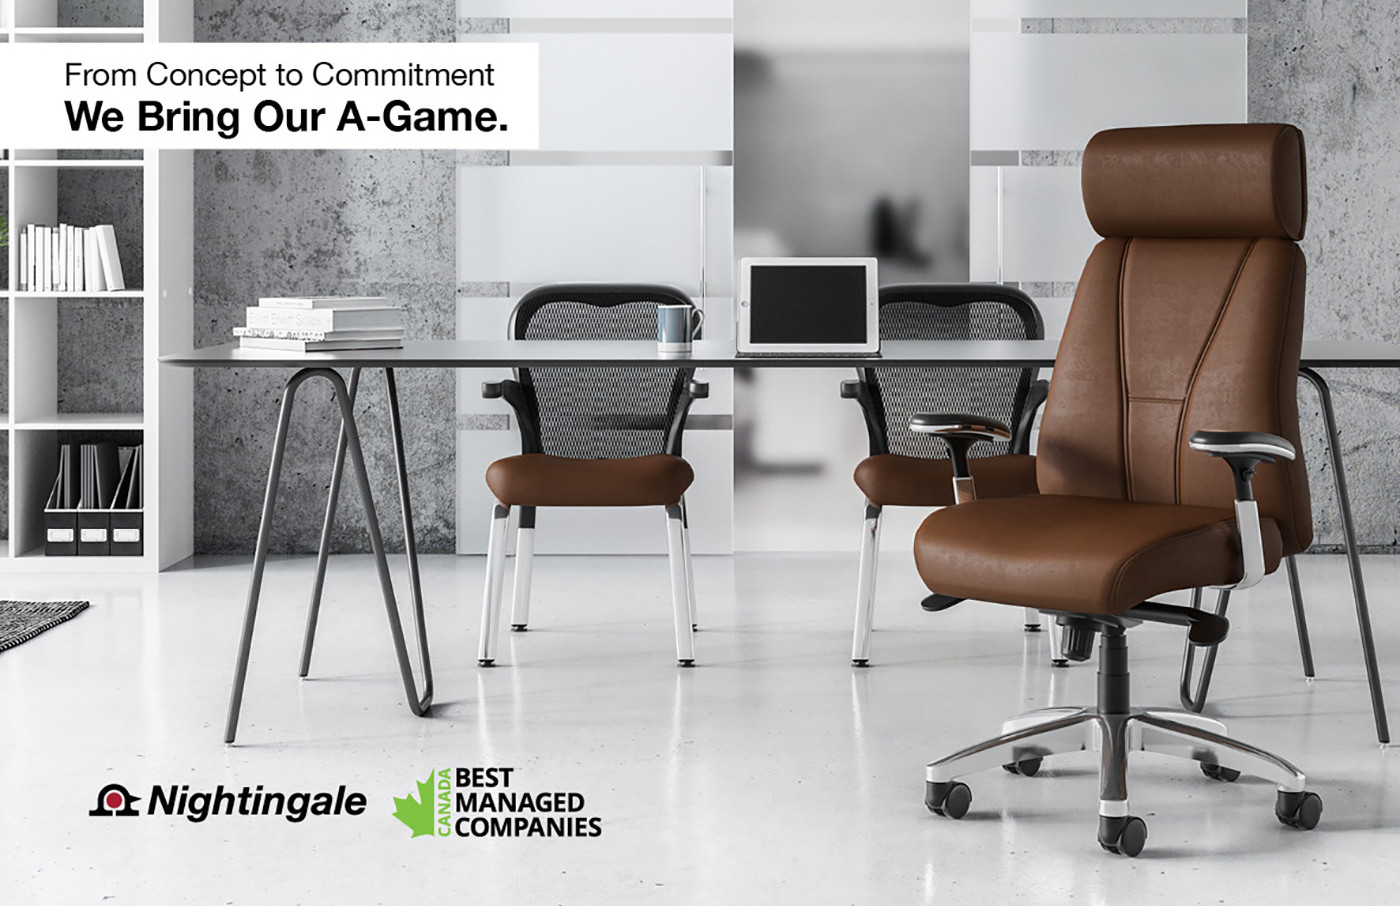 Awards and Recognitions | Nightingale Chairs